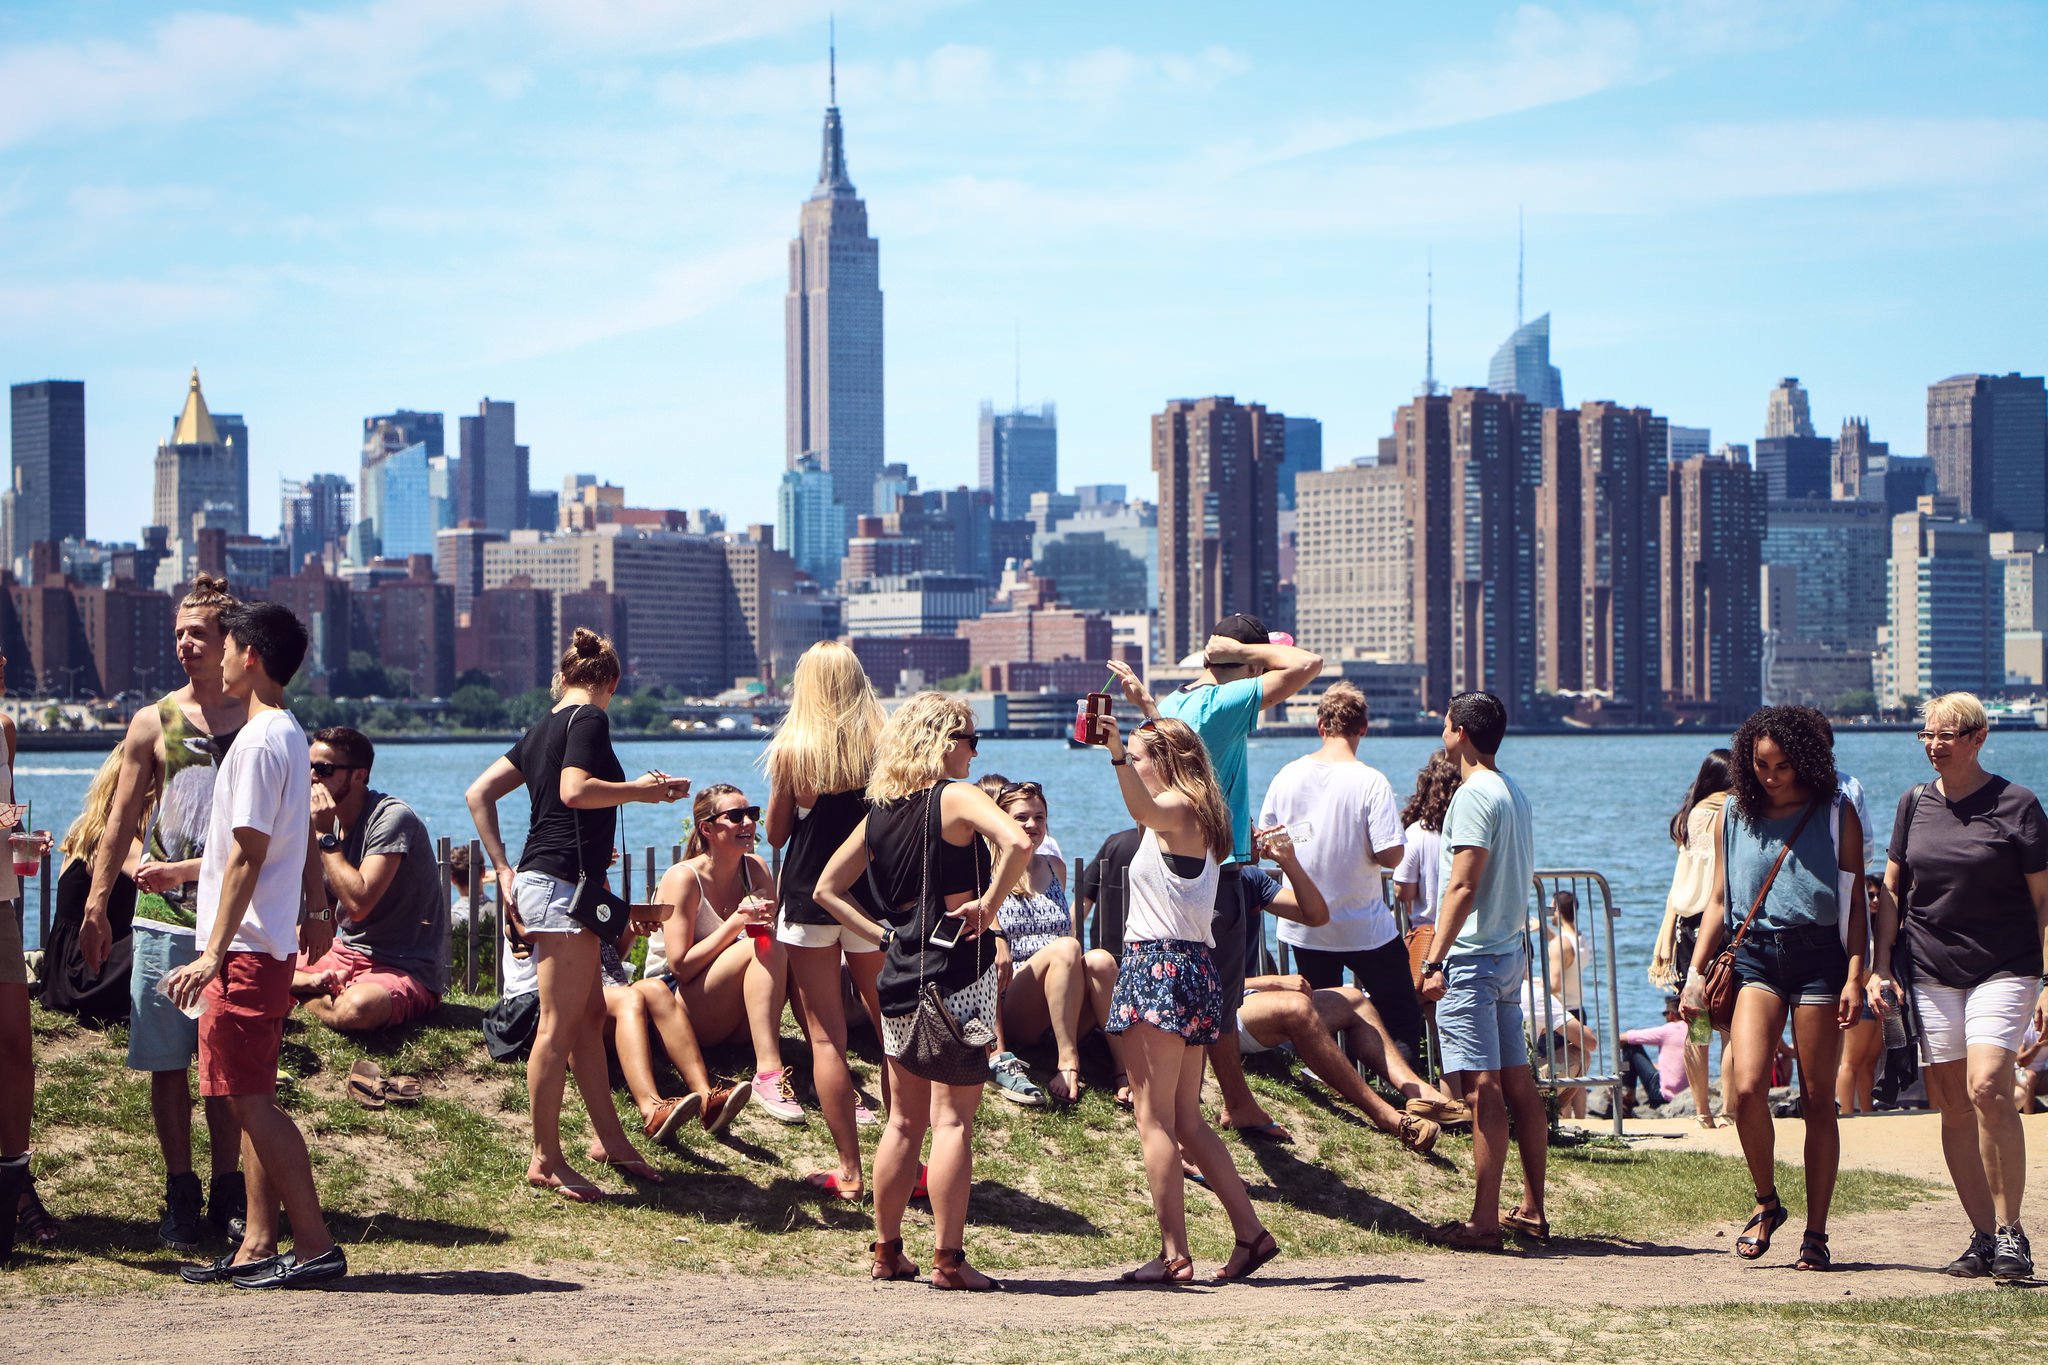 Smorgasburg on Saturdays has the best panoramic view of Manhattan